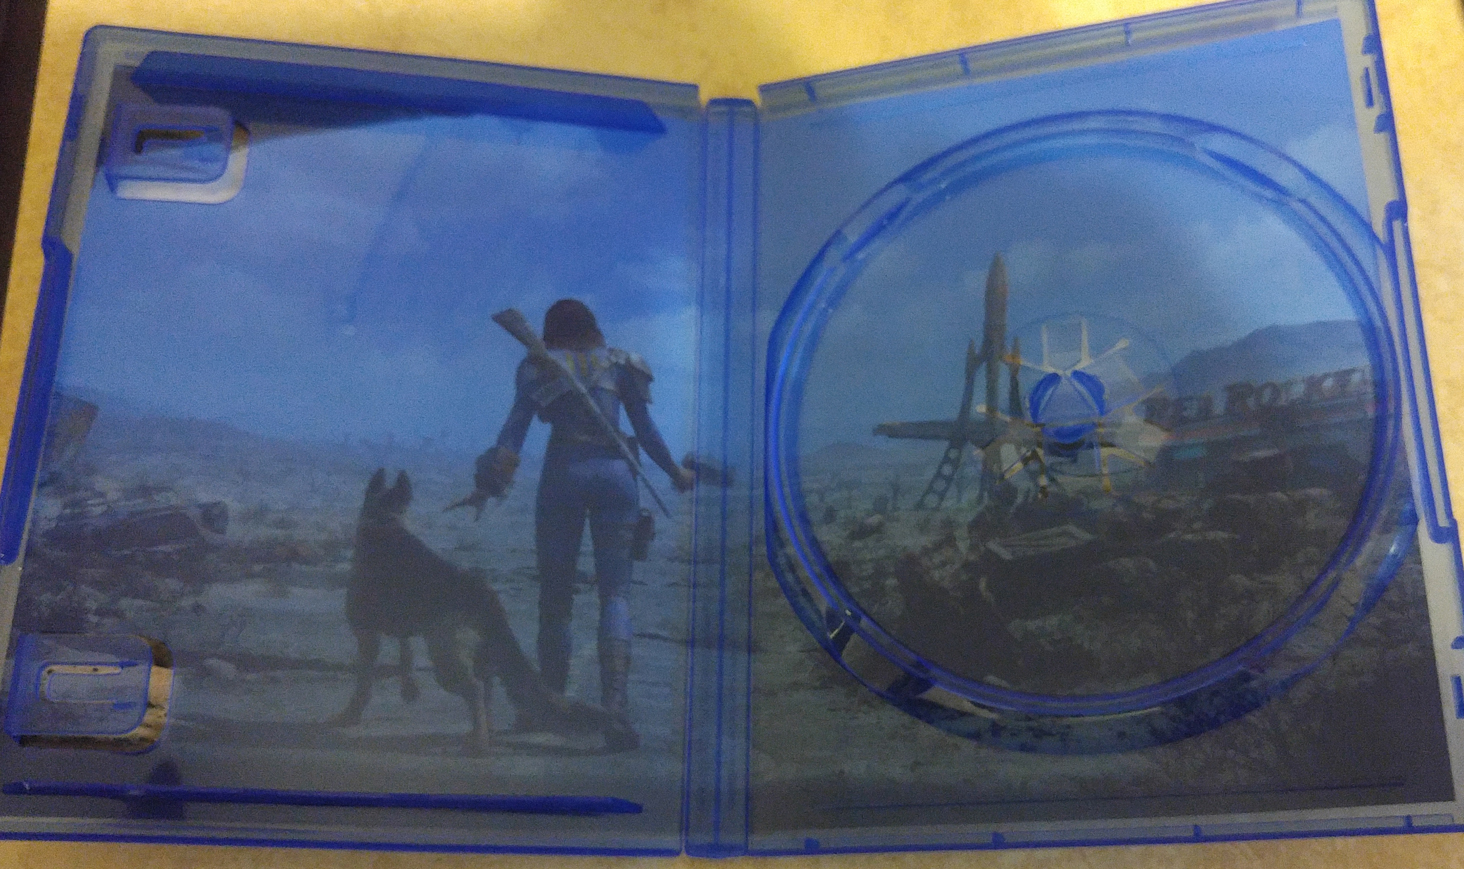 Fallout 4 PS4 reversible cover